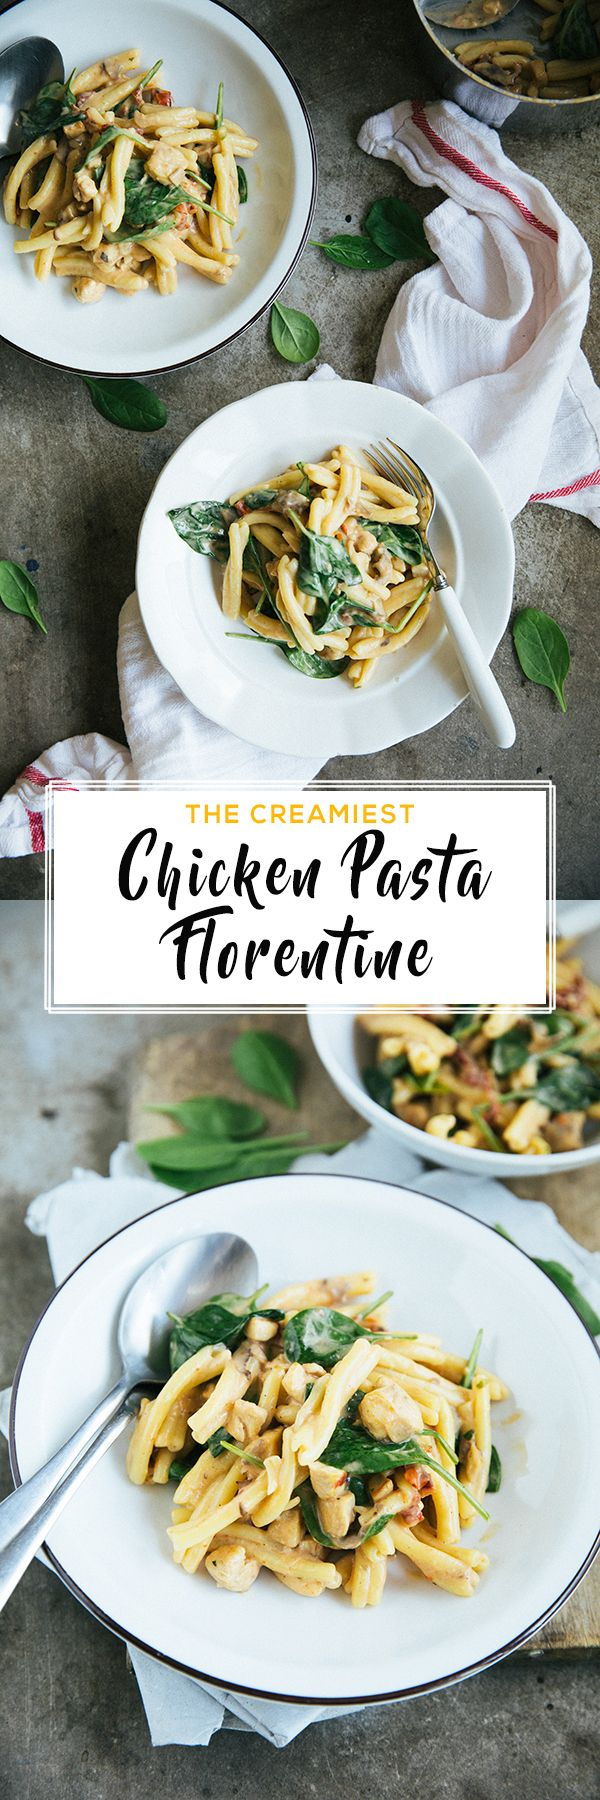 Super creamy Chicken Pasta Florentine. Yup, Creamy Chicken Pasta with baby spinach, homemade sun - dried tomatoes and lemon juice. The perfectly balanced pasta, made in less than 30 minutes.